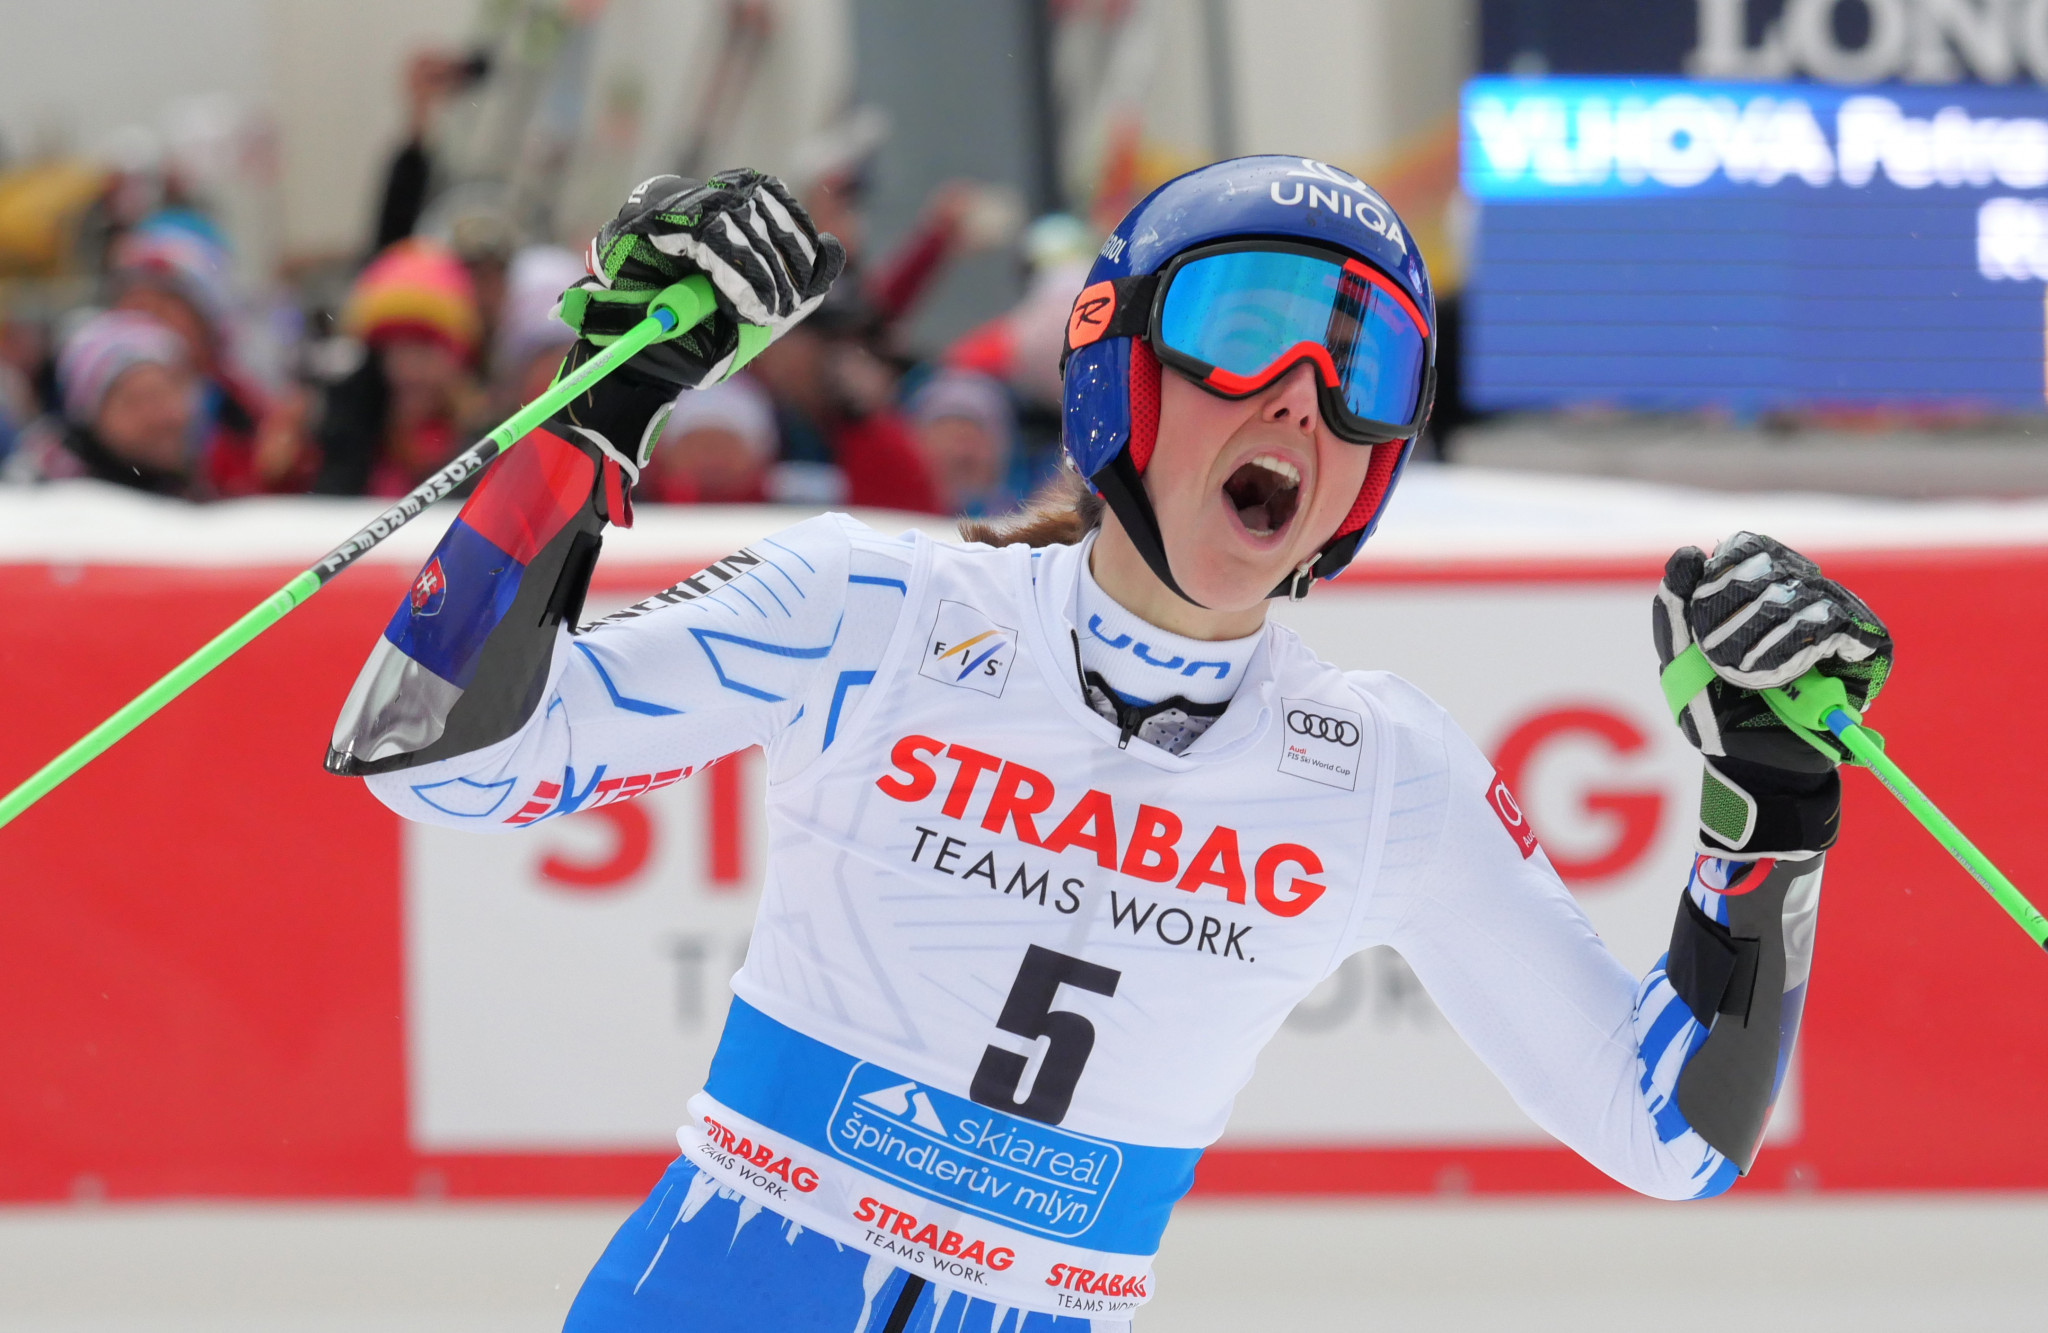 Shiffrin's World Cup giant slalom ambitions checked as Vlhova wins in Špindlerův Mlýn